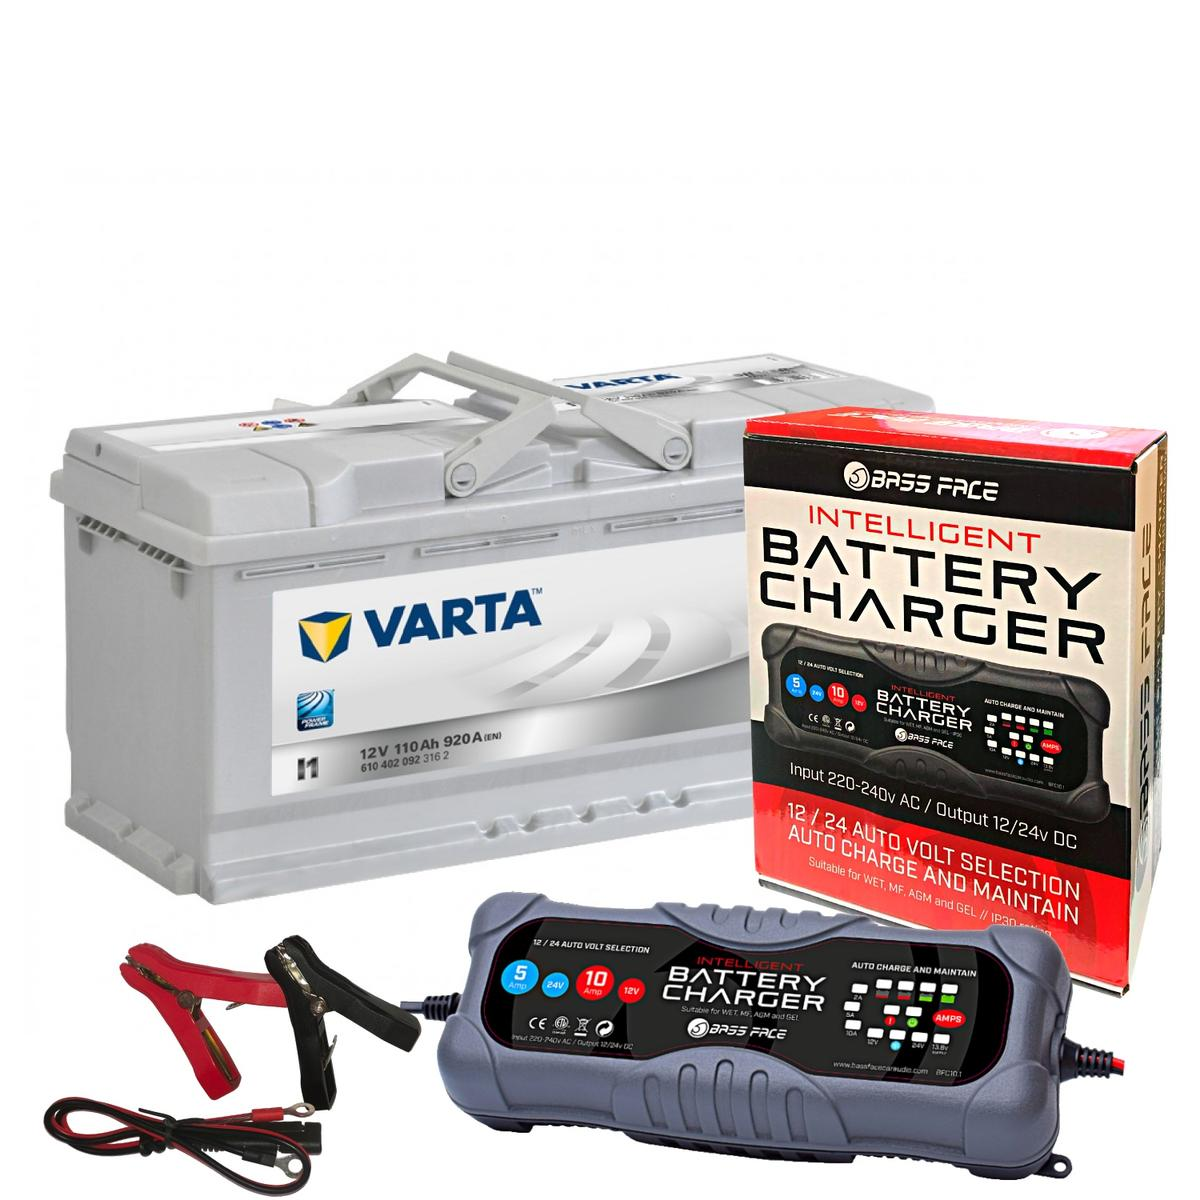 Varta I1 Audi Porsche Car Battery 12v 5 Year 020 110Ah 920CCA W/ 10 Amp Charger